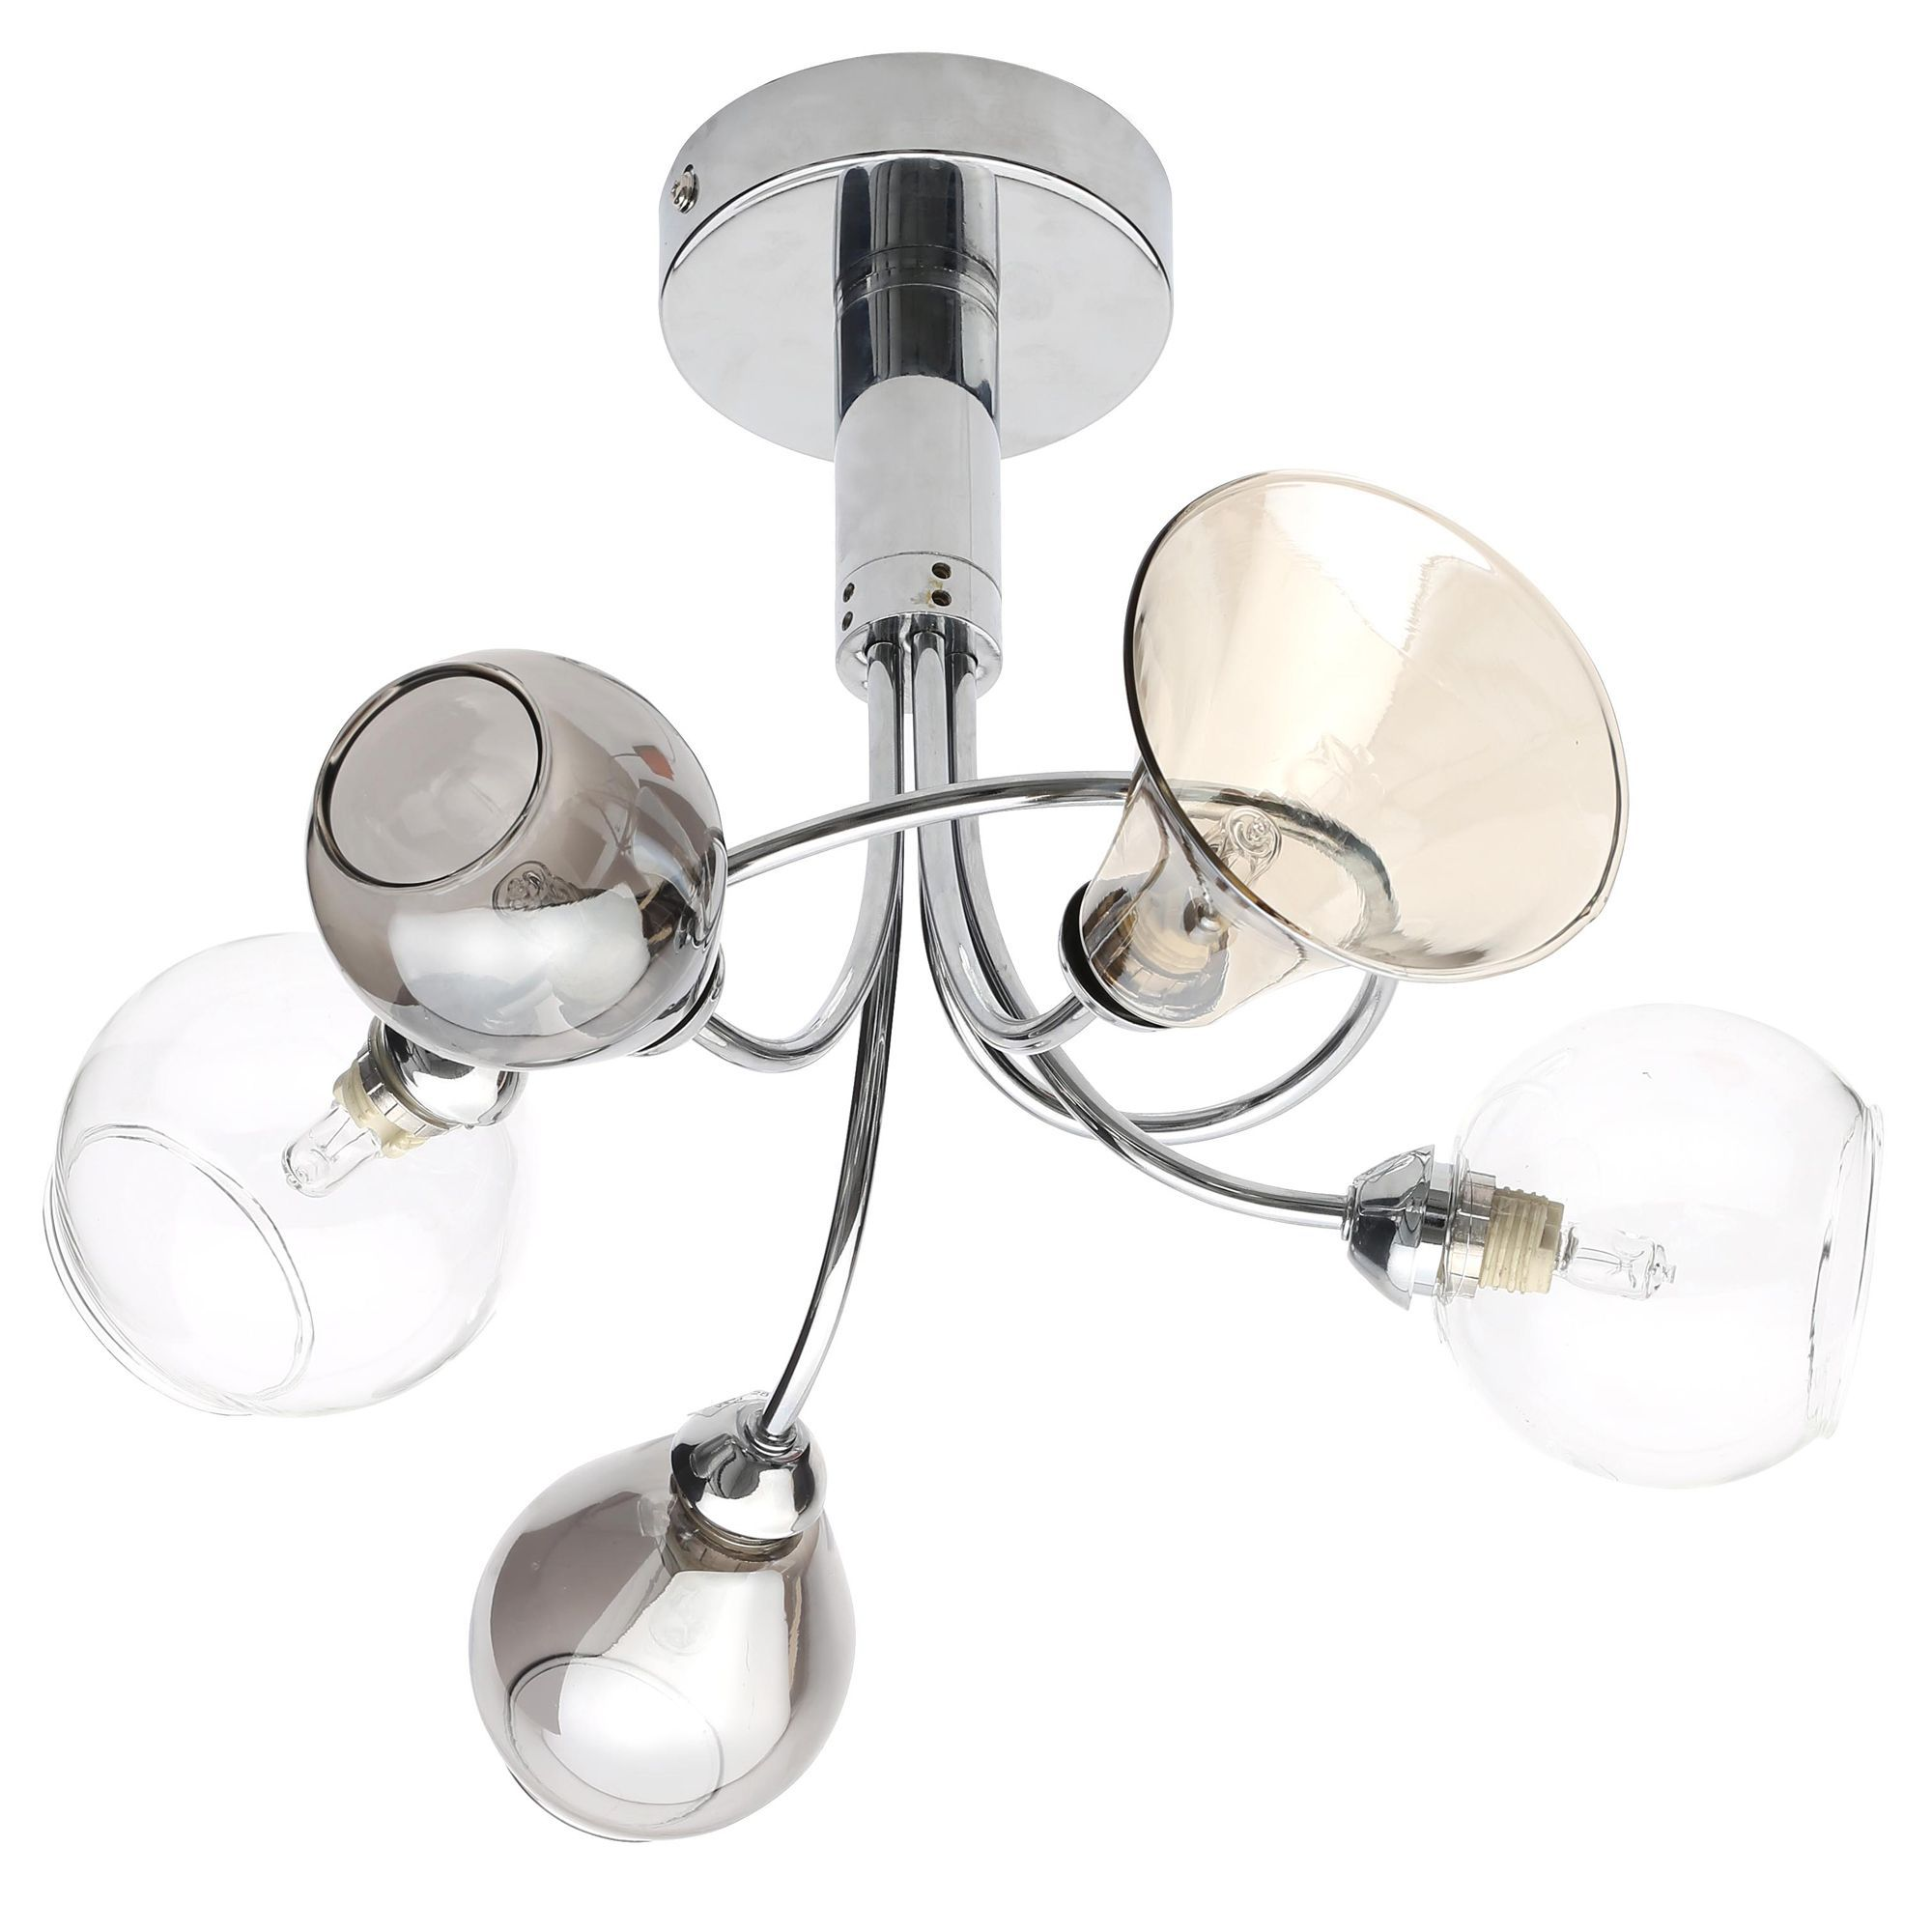 Lilie Chrome Effect 5 Lamp Semi Flush Ceiling Light